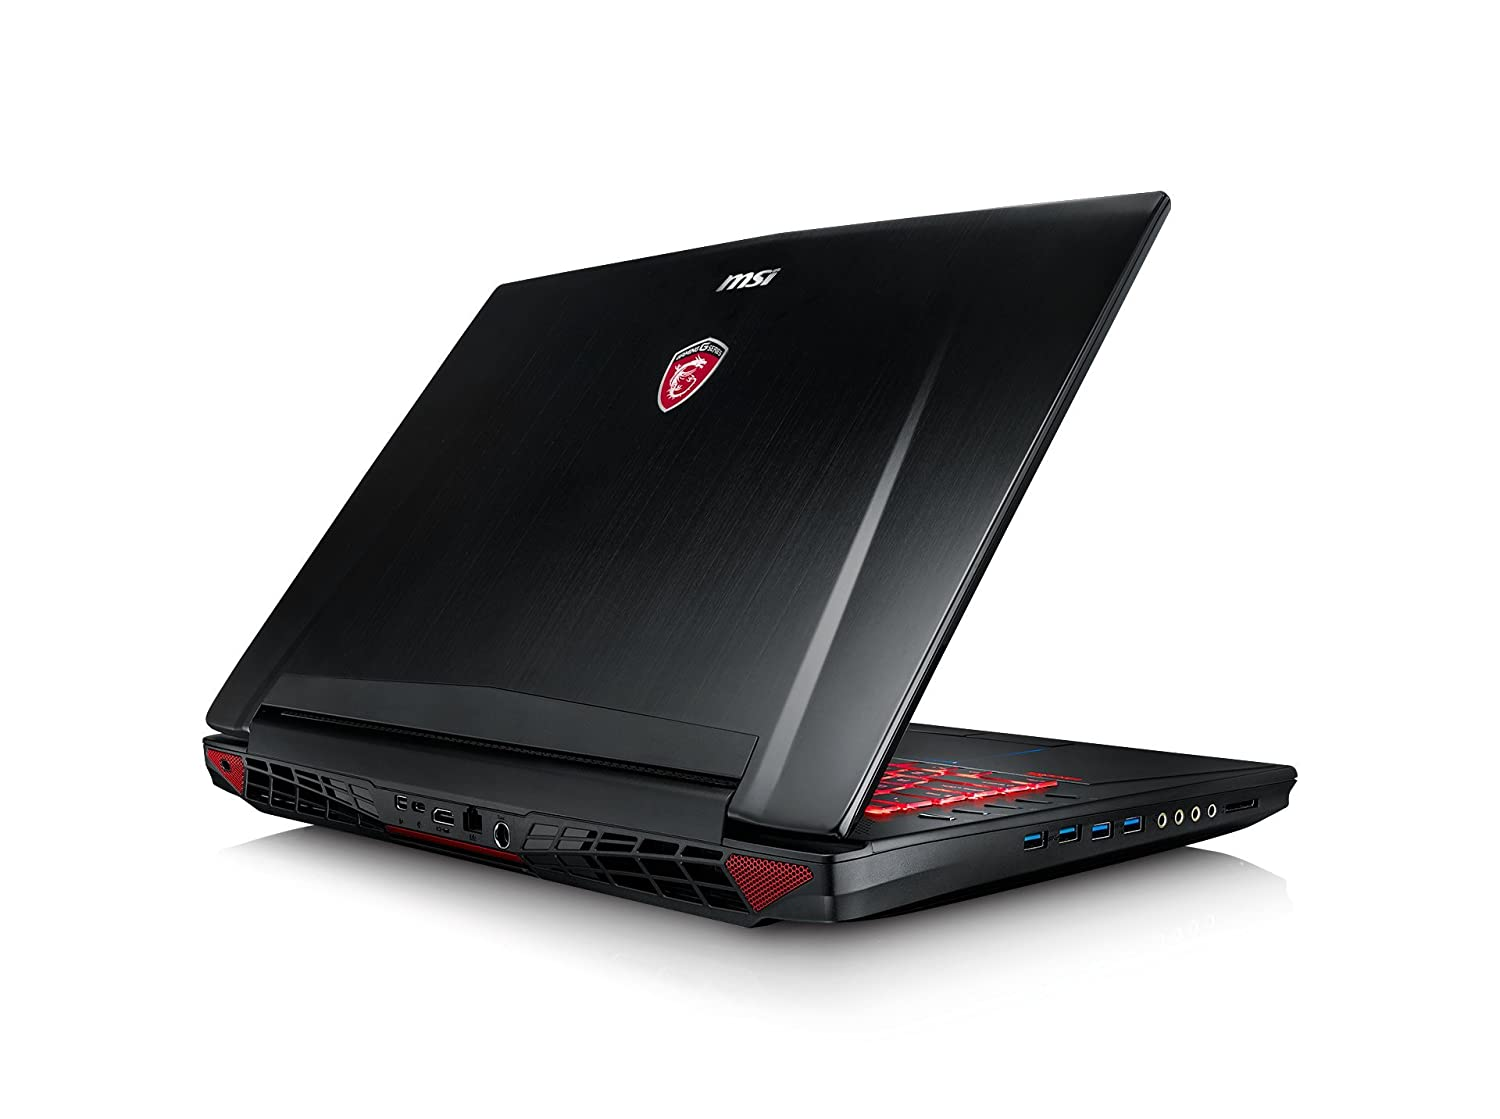 MSI GT72S-6QE32SR42BW 17 Zoll Gaming-Notebook